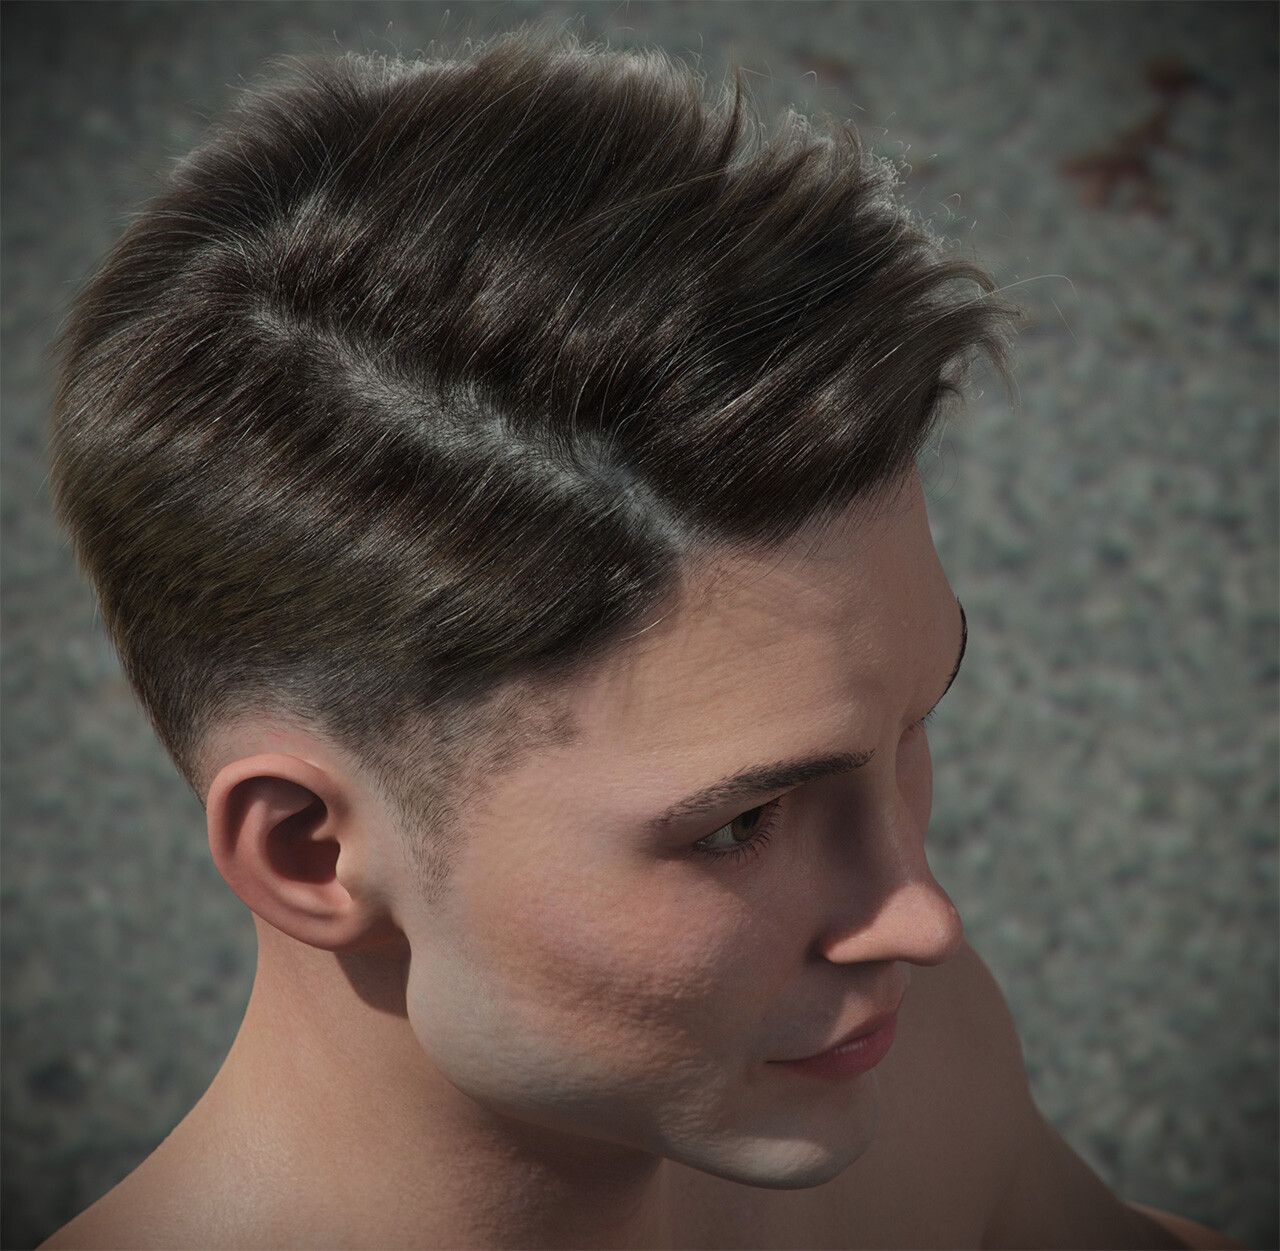 Andrew krivulya genry haircut 1 by akcharly cam06